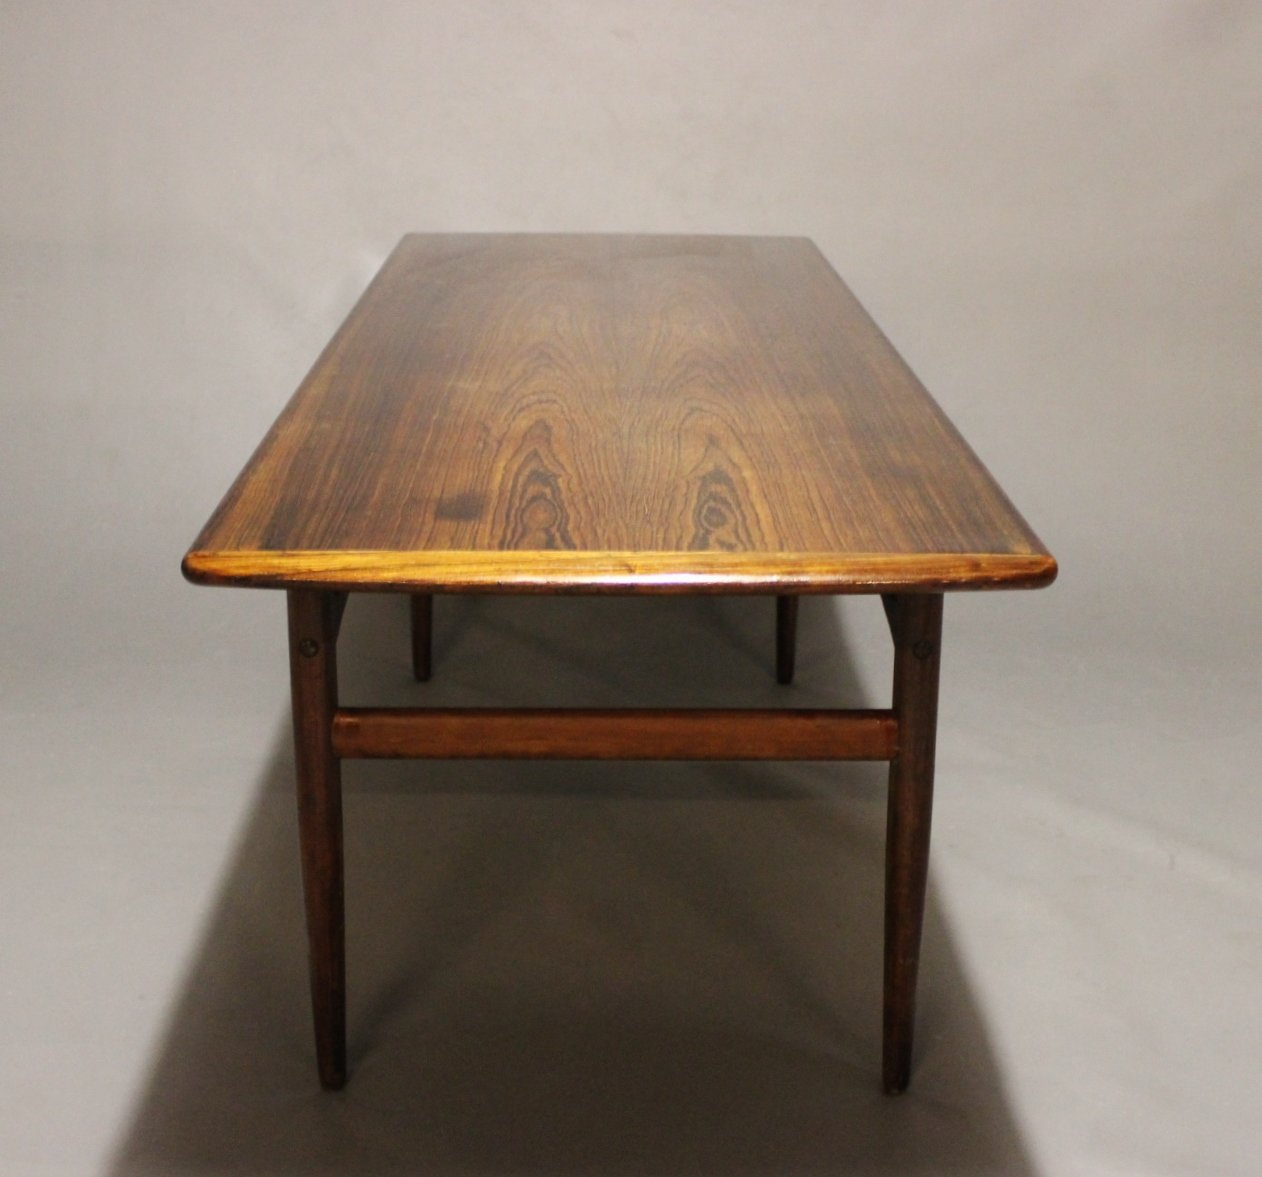 Rosewood Coffee Table From Arrebo M Bler 1960s For Sale At Pamono